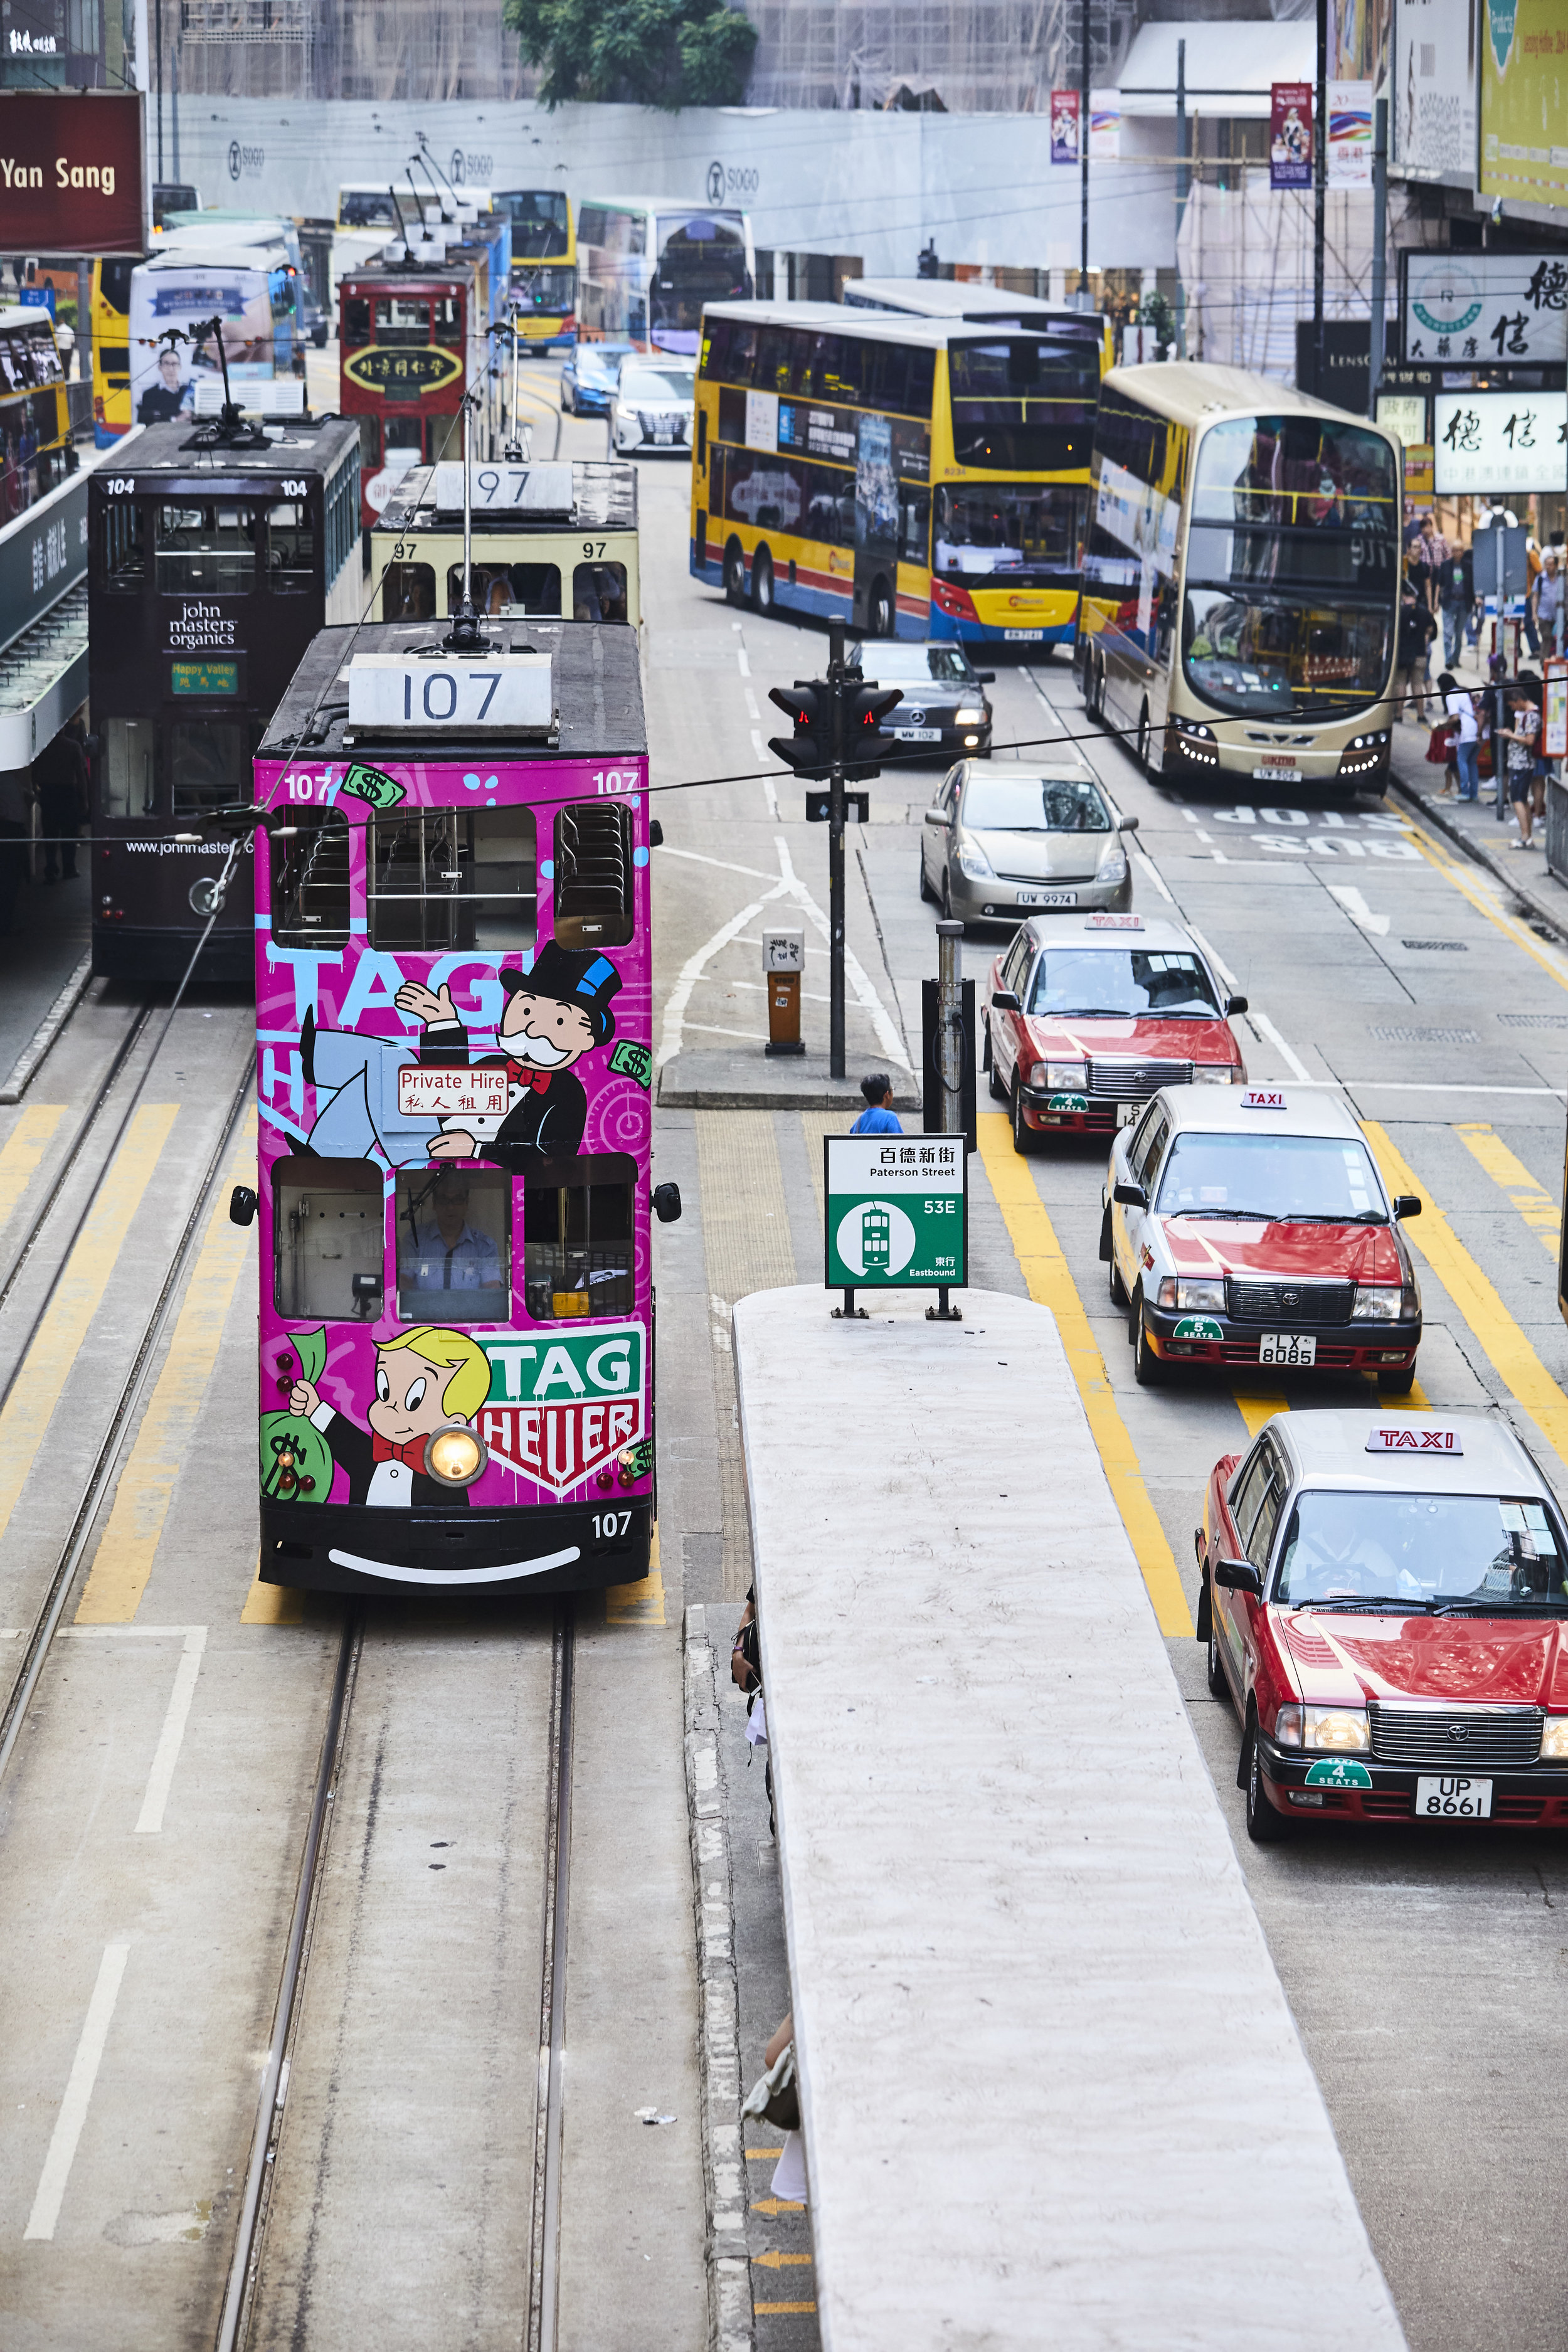 TAG Heuer. Alec Monopoly Tram Event